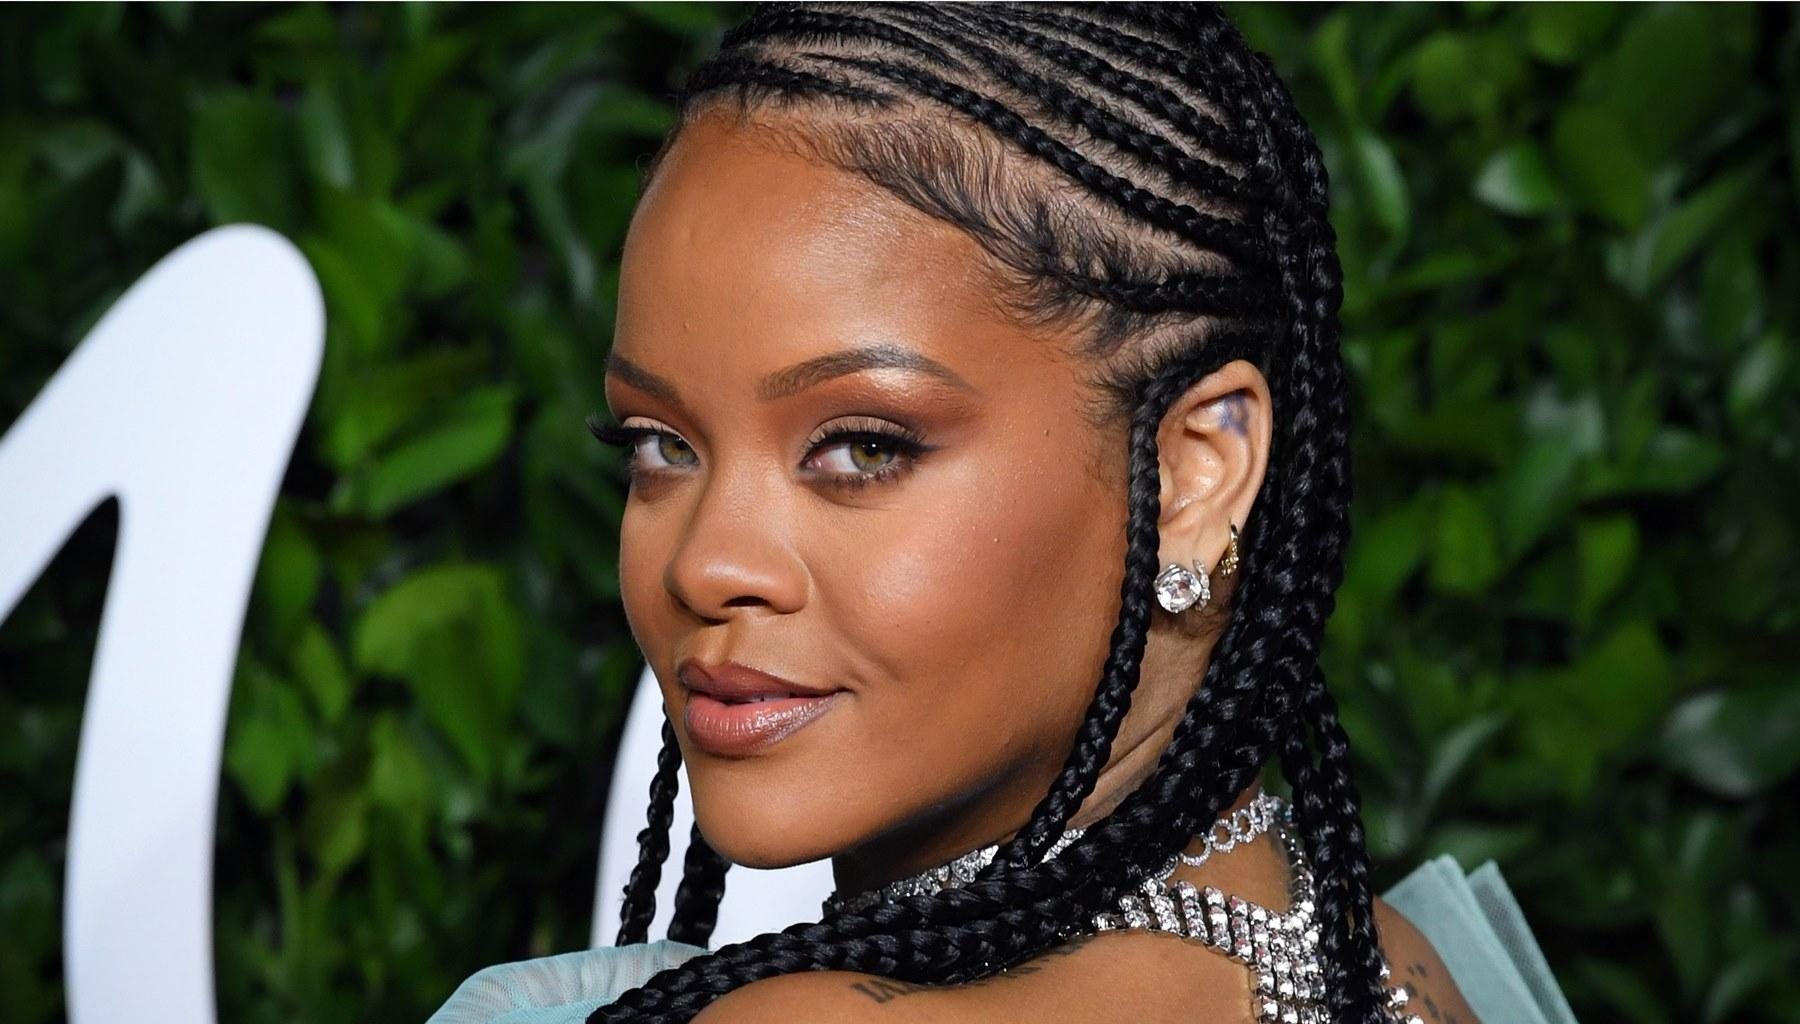 Rihanna Almost Bares It All In New Video While Giving A Taste Of Her Savage x Fenty Lingerie Line